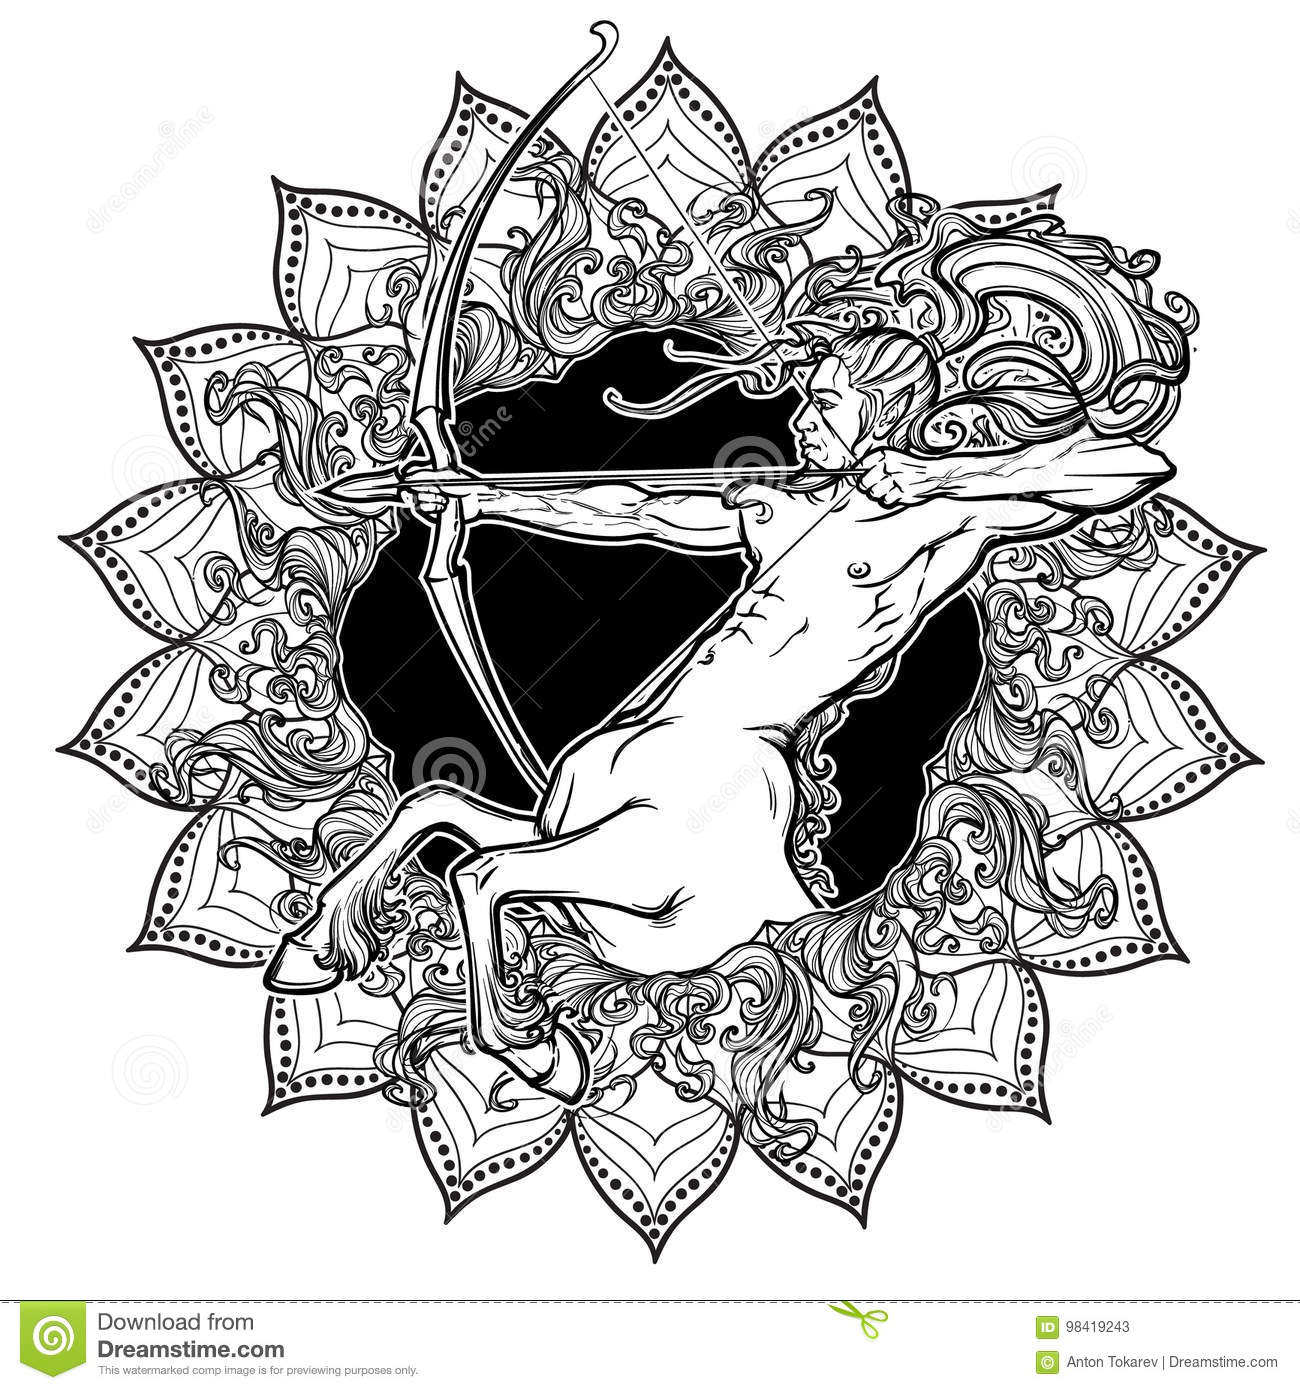 Sagittarius Zodiac Sign With A Decorative Frame Of Sun Flares And